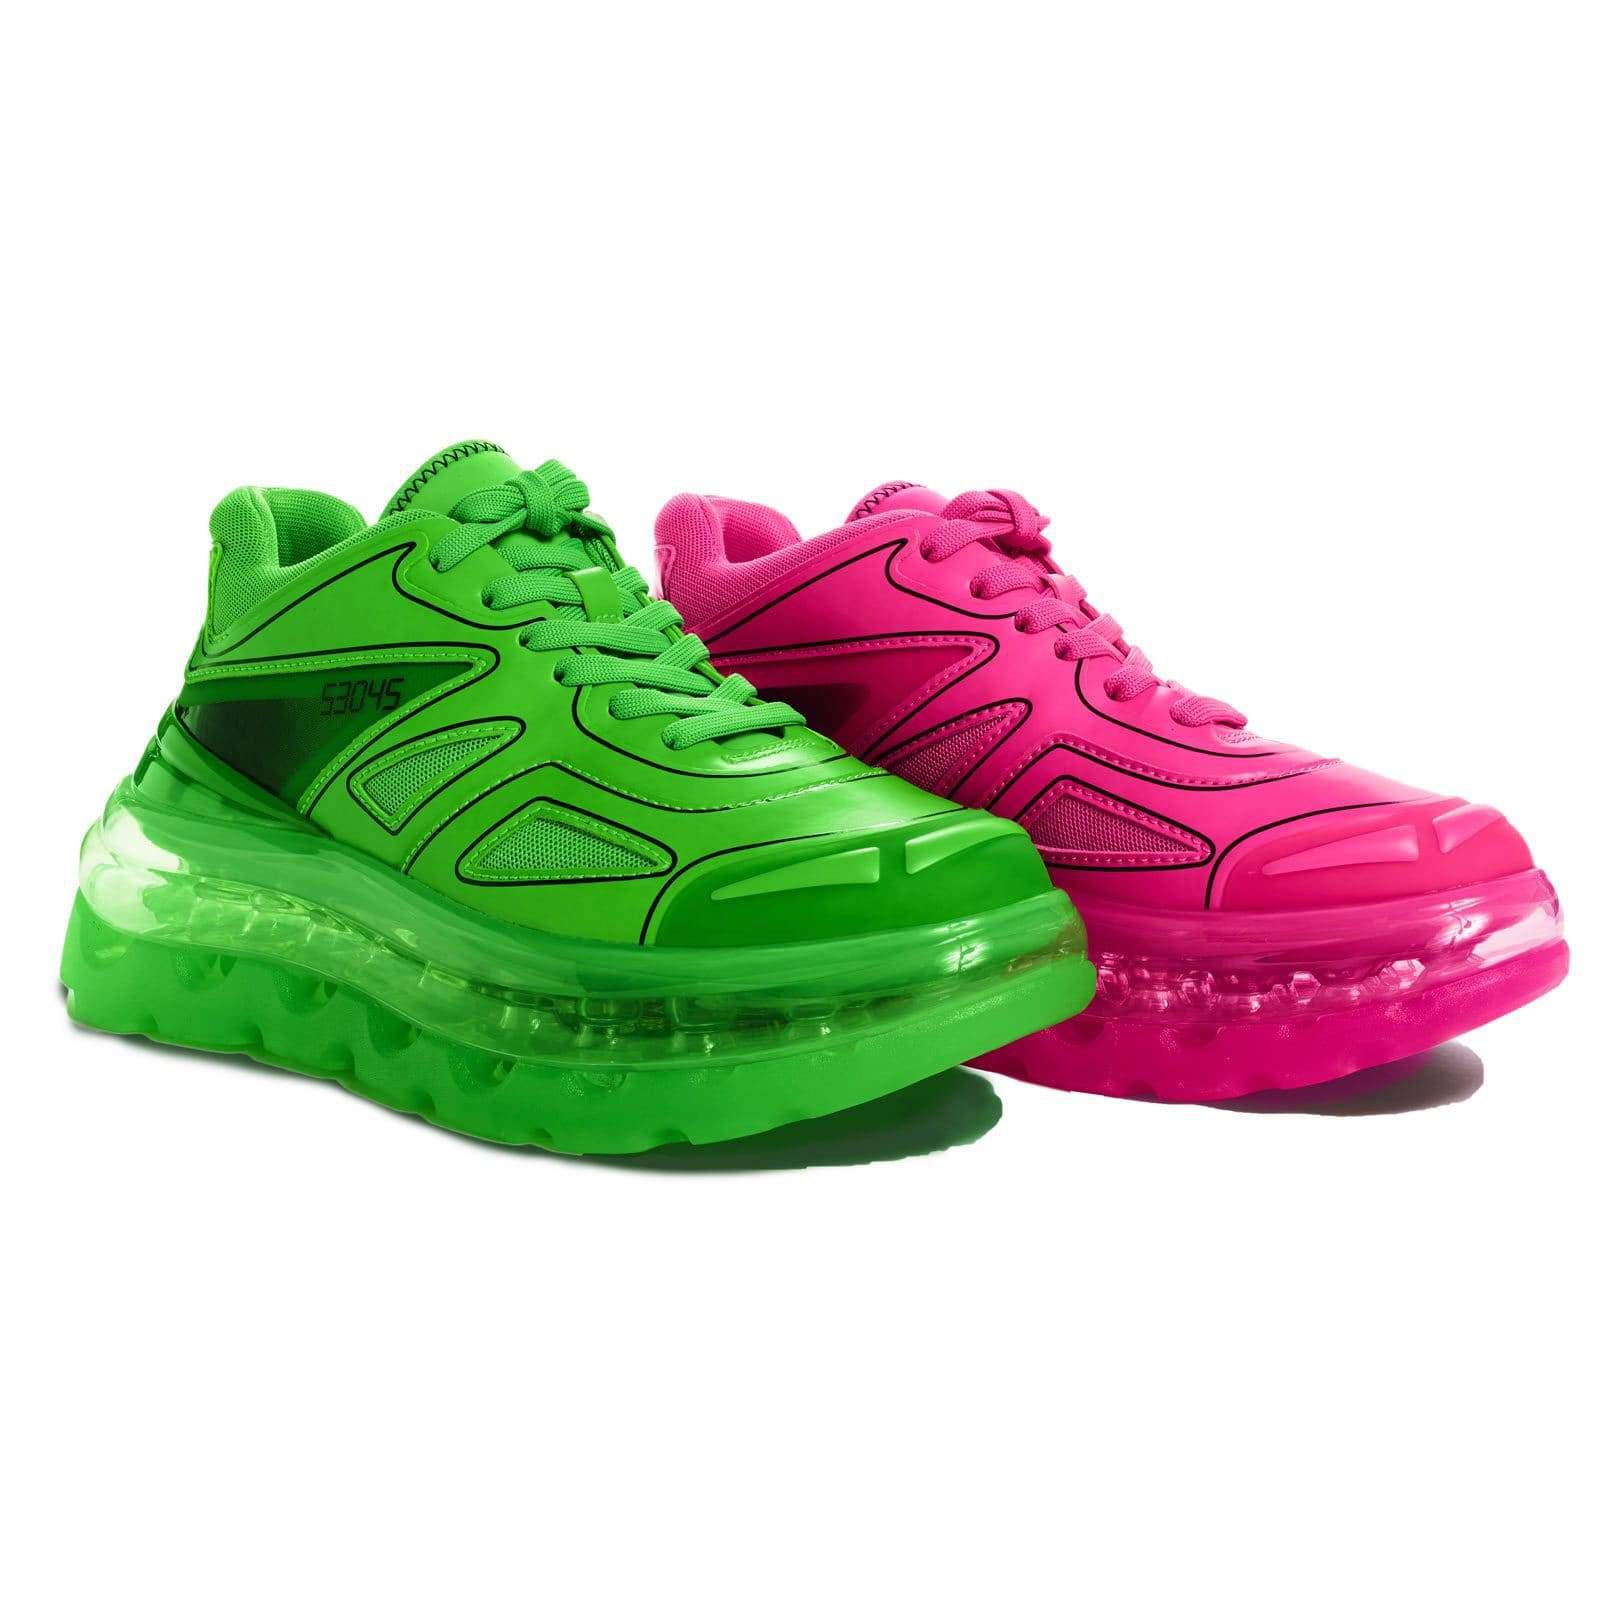 BUMP'AIR NEON MIX LOW TOP Pink & Green Sneakers